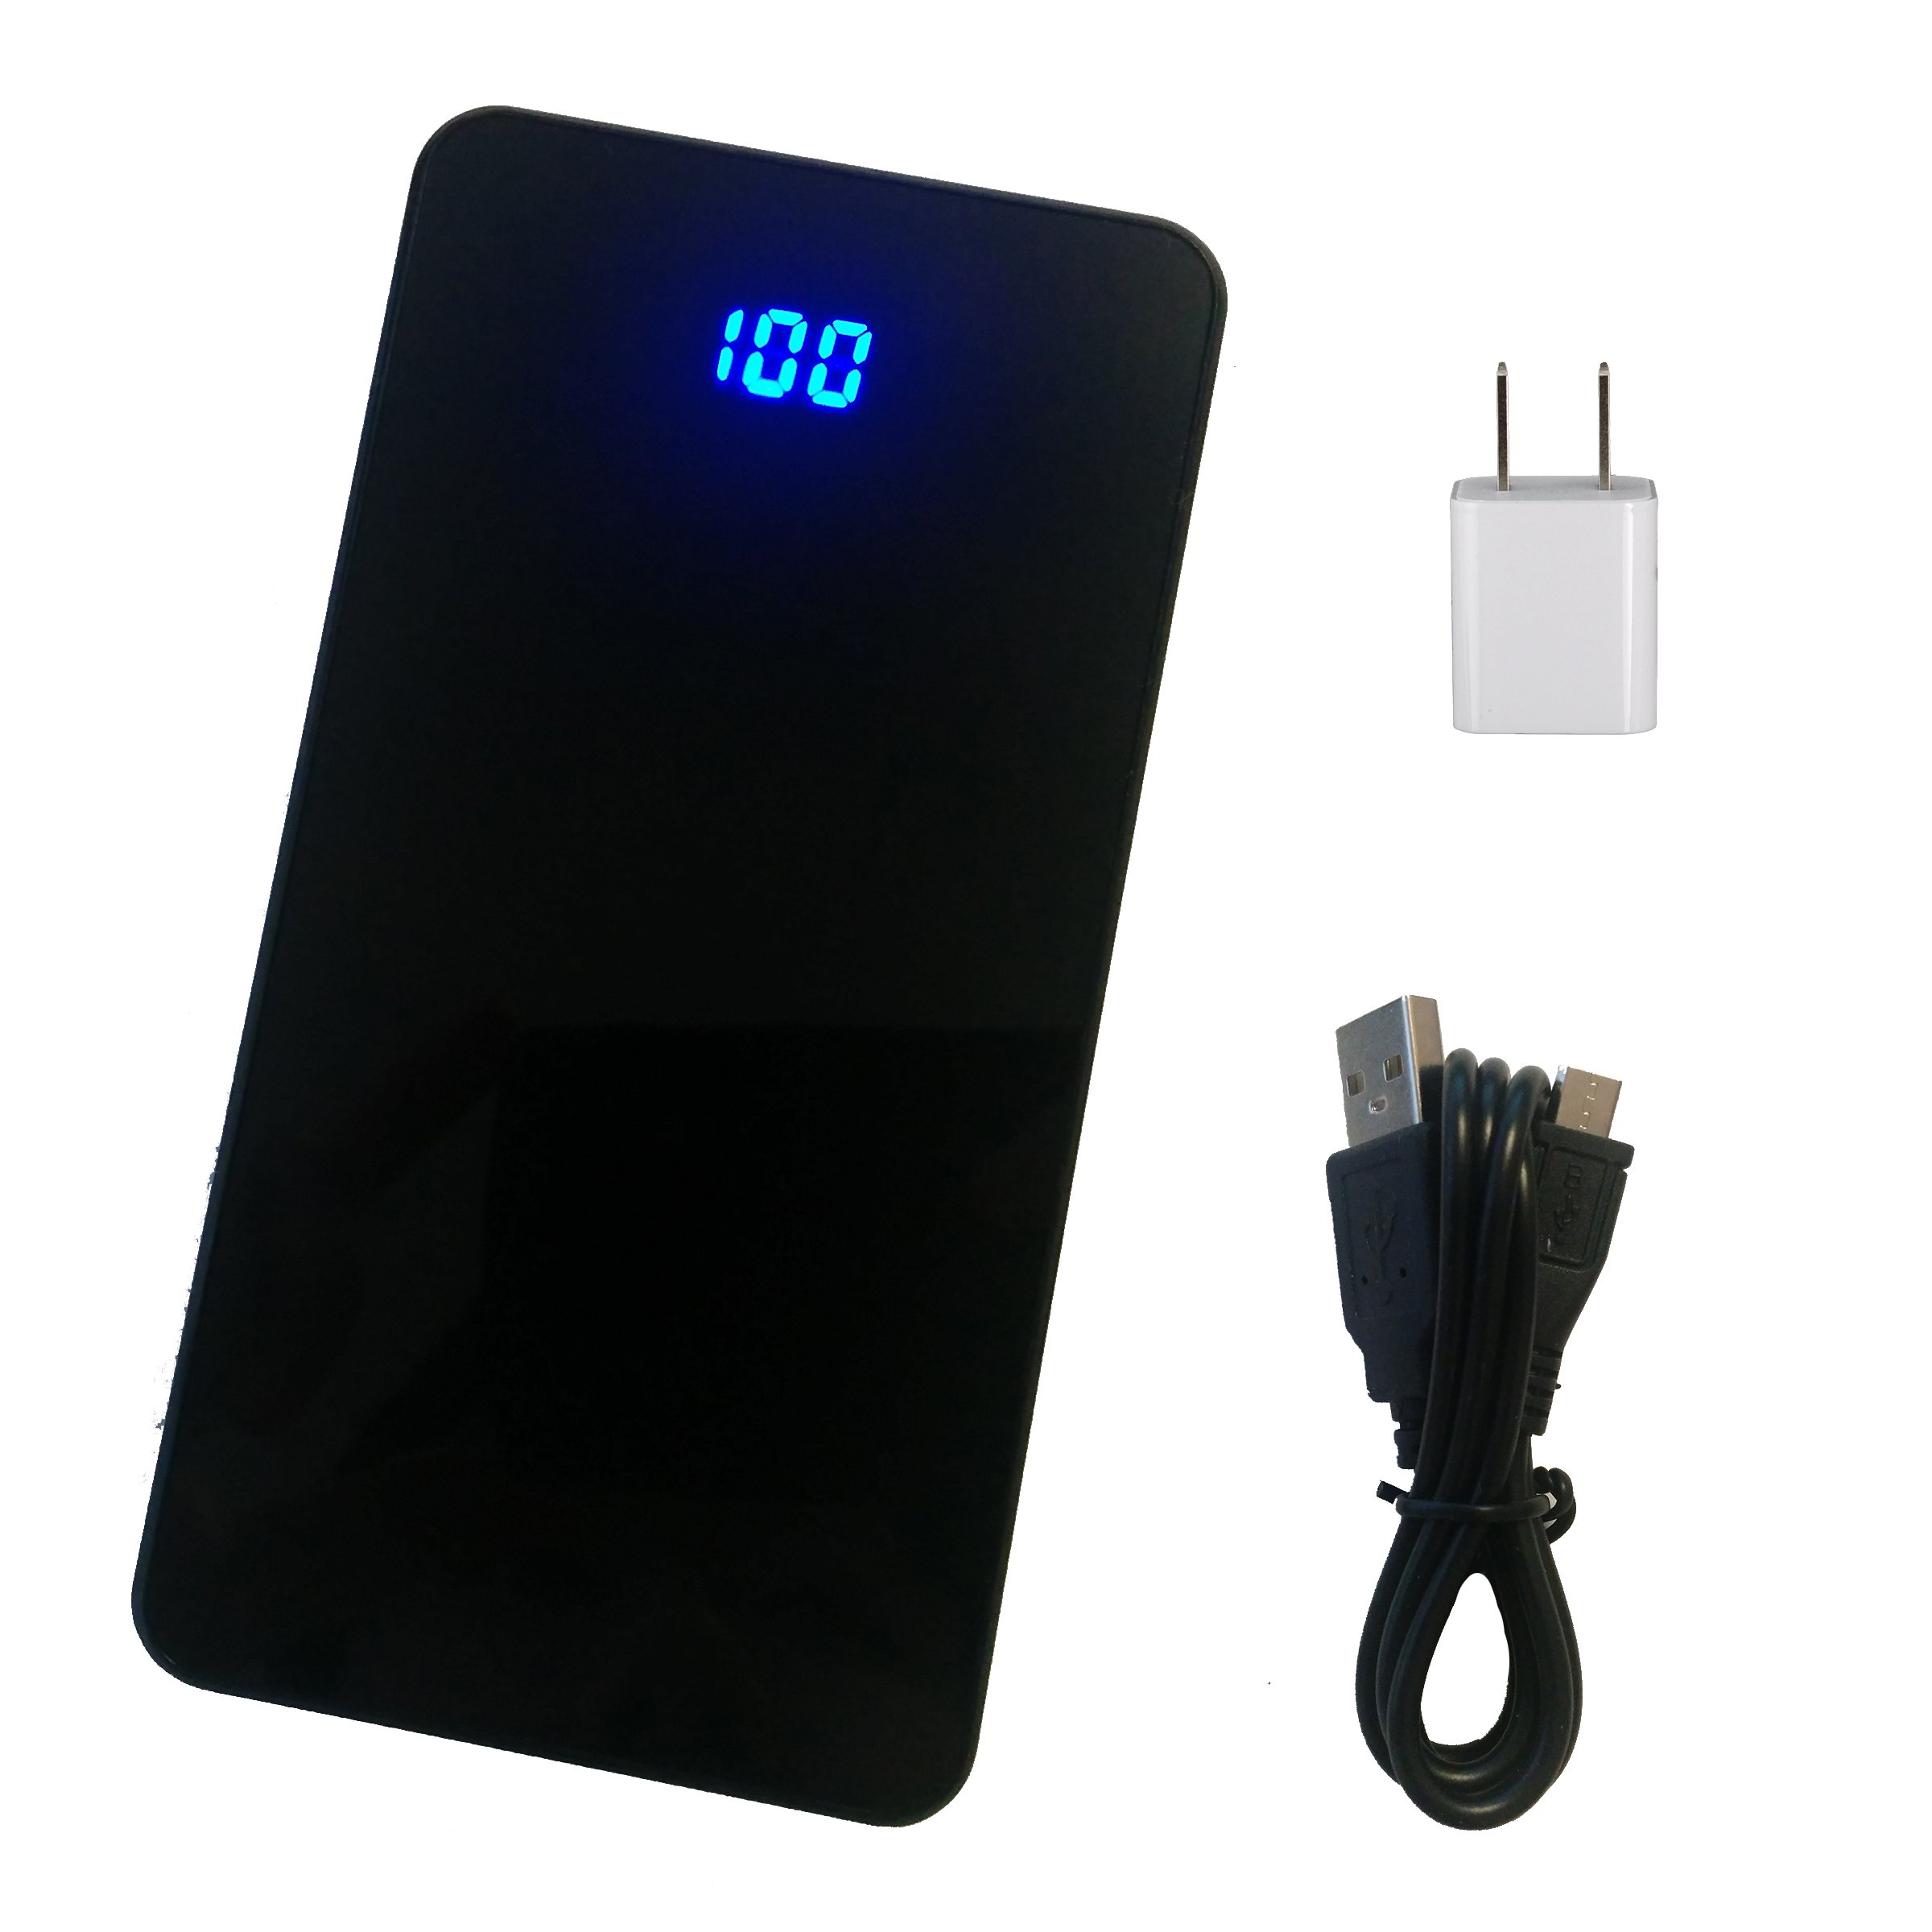 Power Bank and USB Wall Charger for LG Connect 4G - 5000mAh Capacity